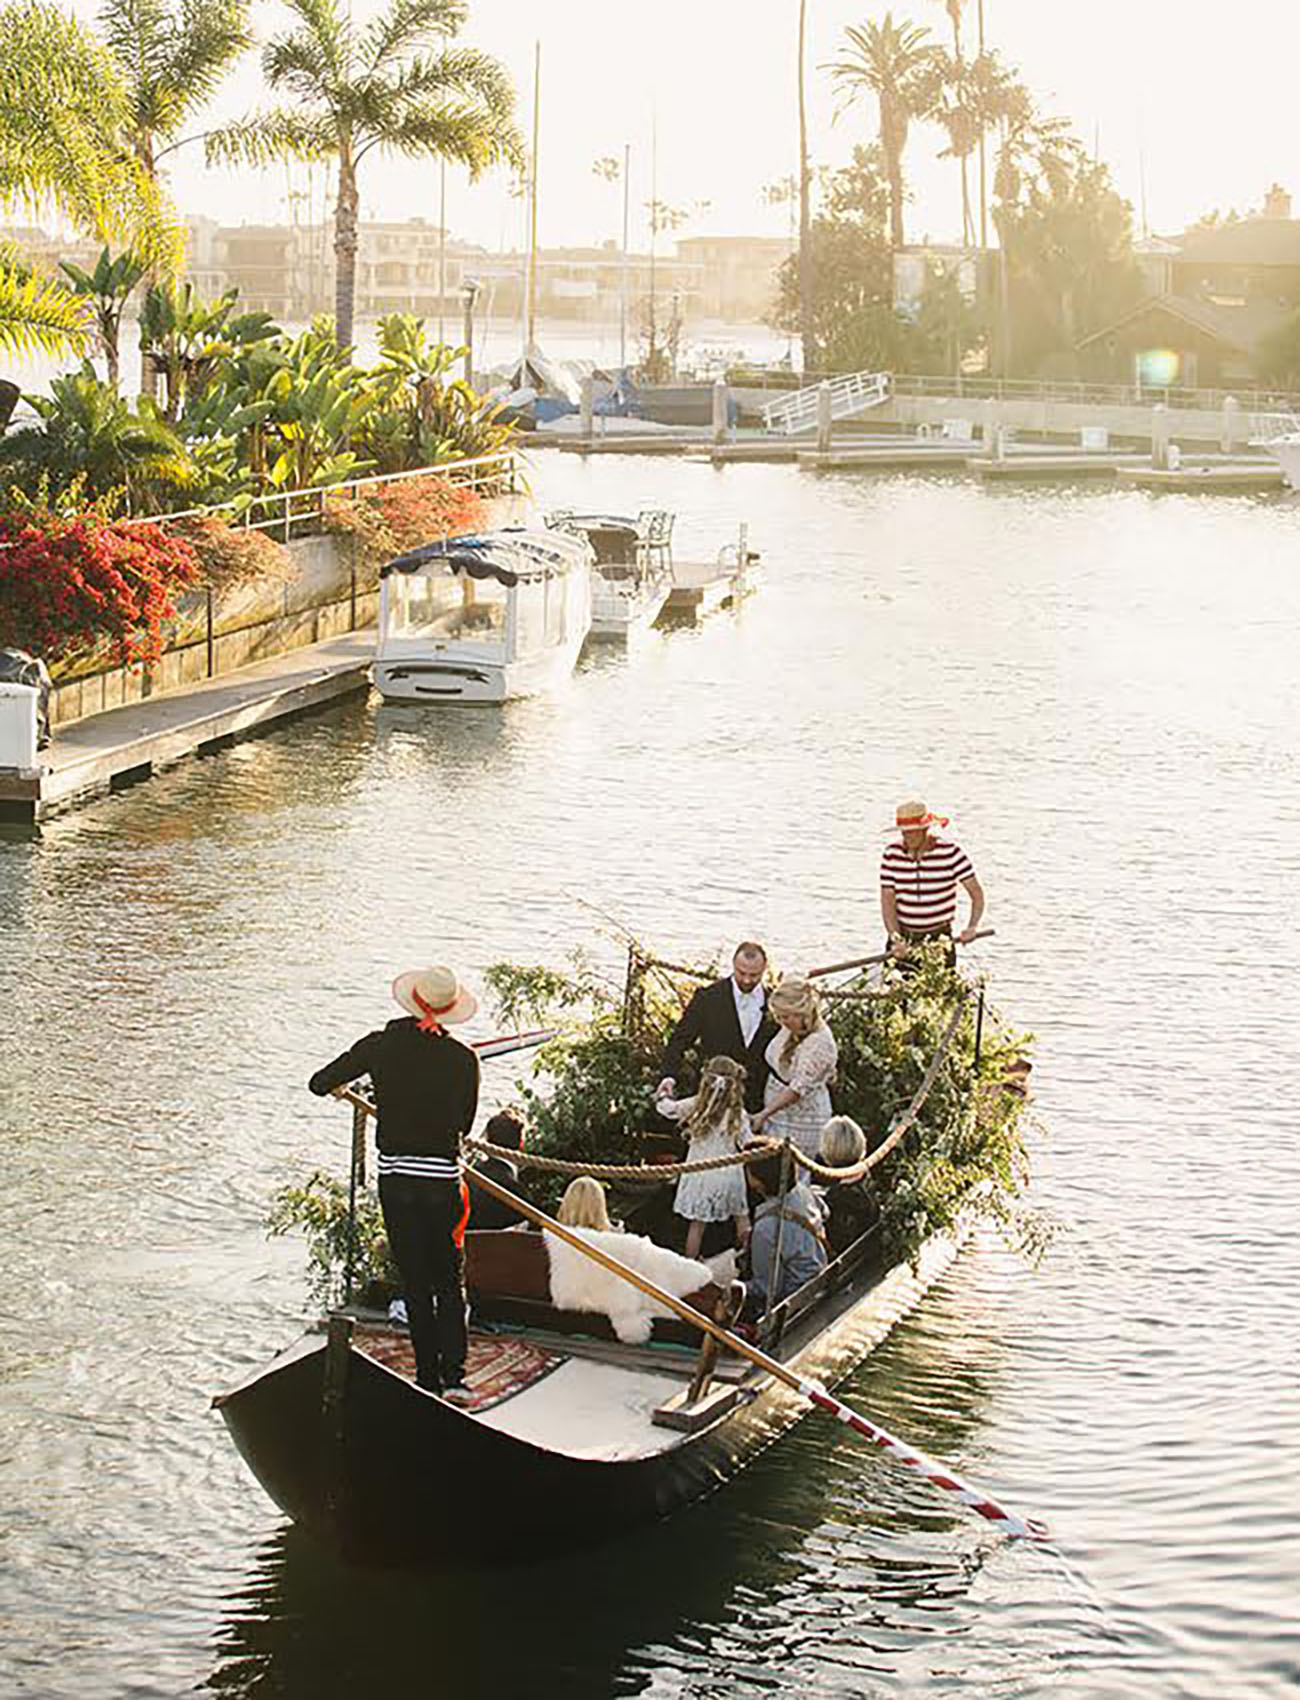 Gondola rides aren't just for Venice Italy, you can score one in the US...fill it with flowers and create a floating elopement venue